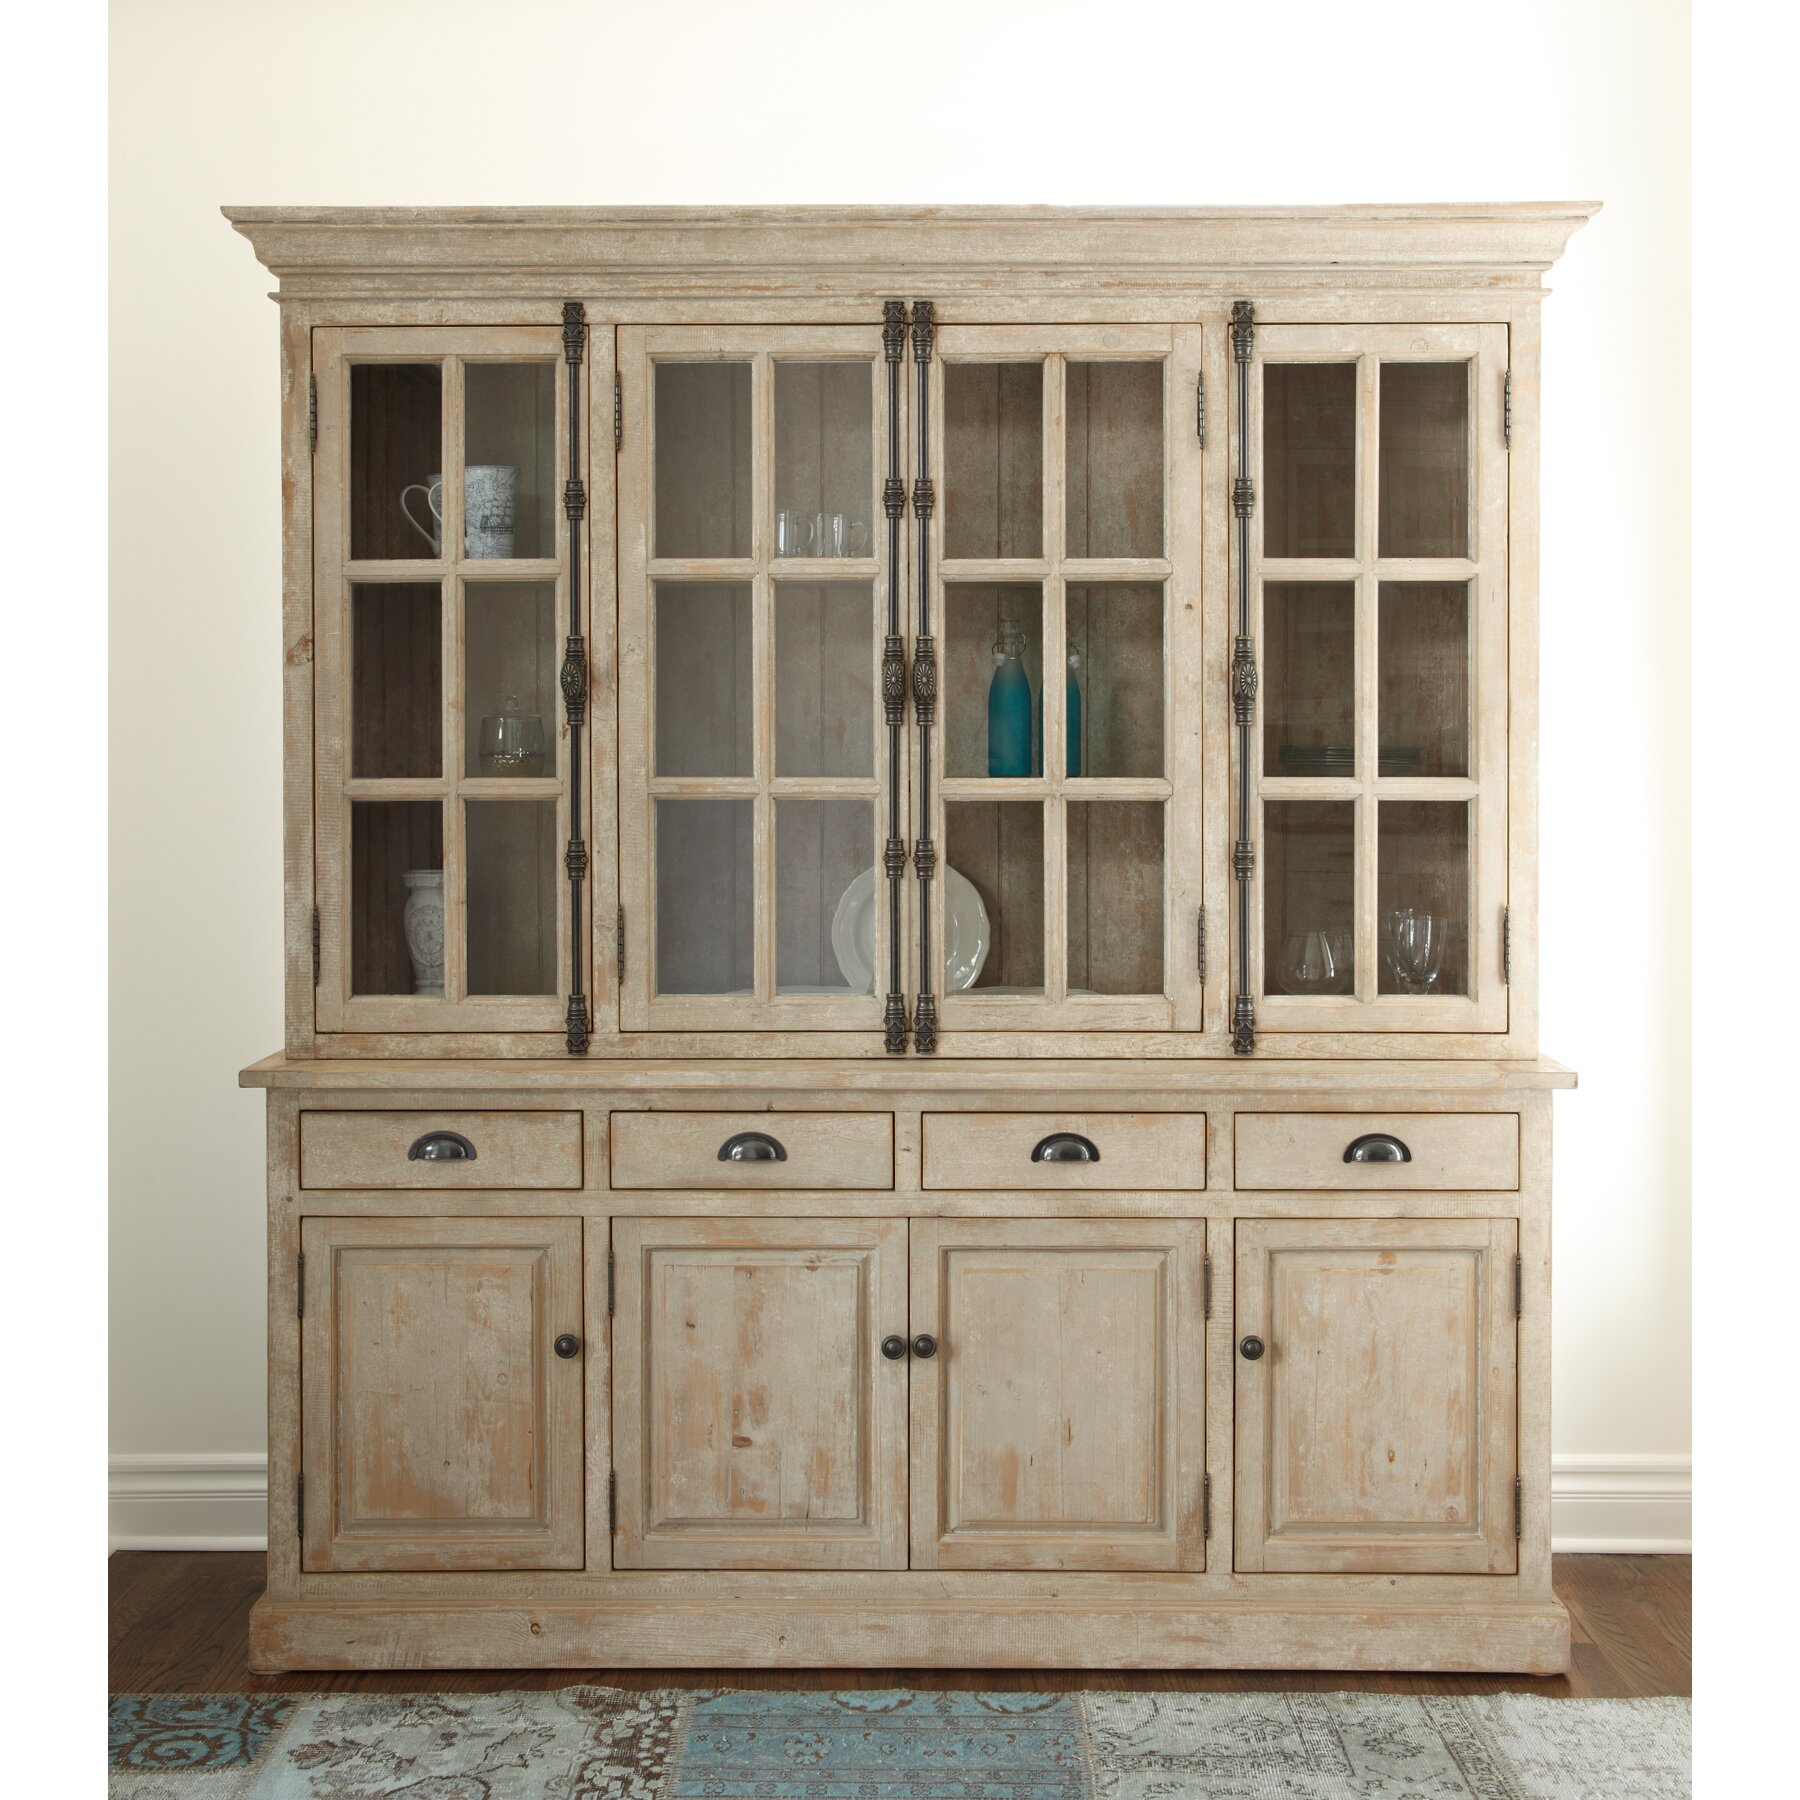 Dining Room Hutch Cabinet: Kosas Home Windsor Elodie China Cabinet & Reviews